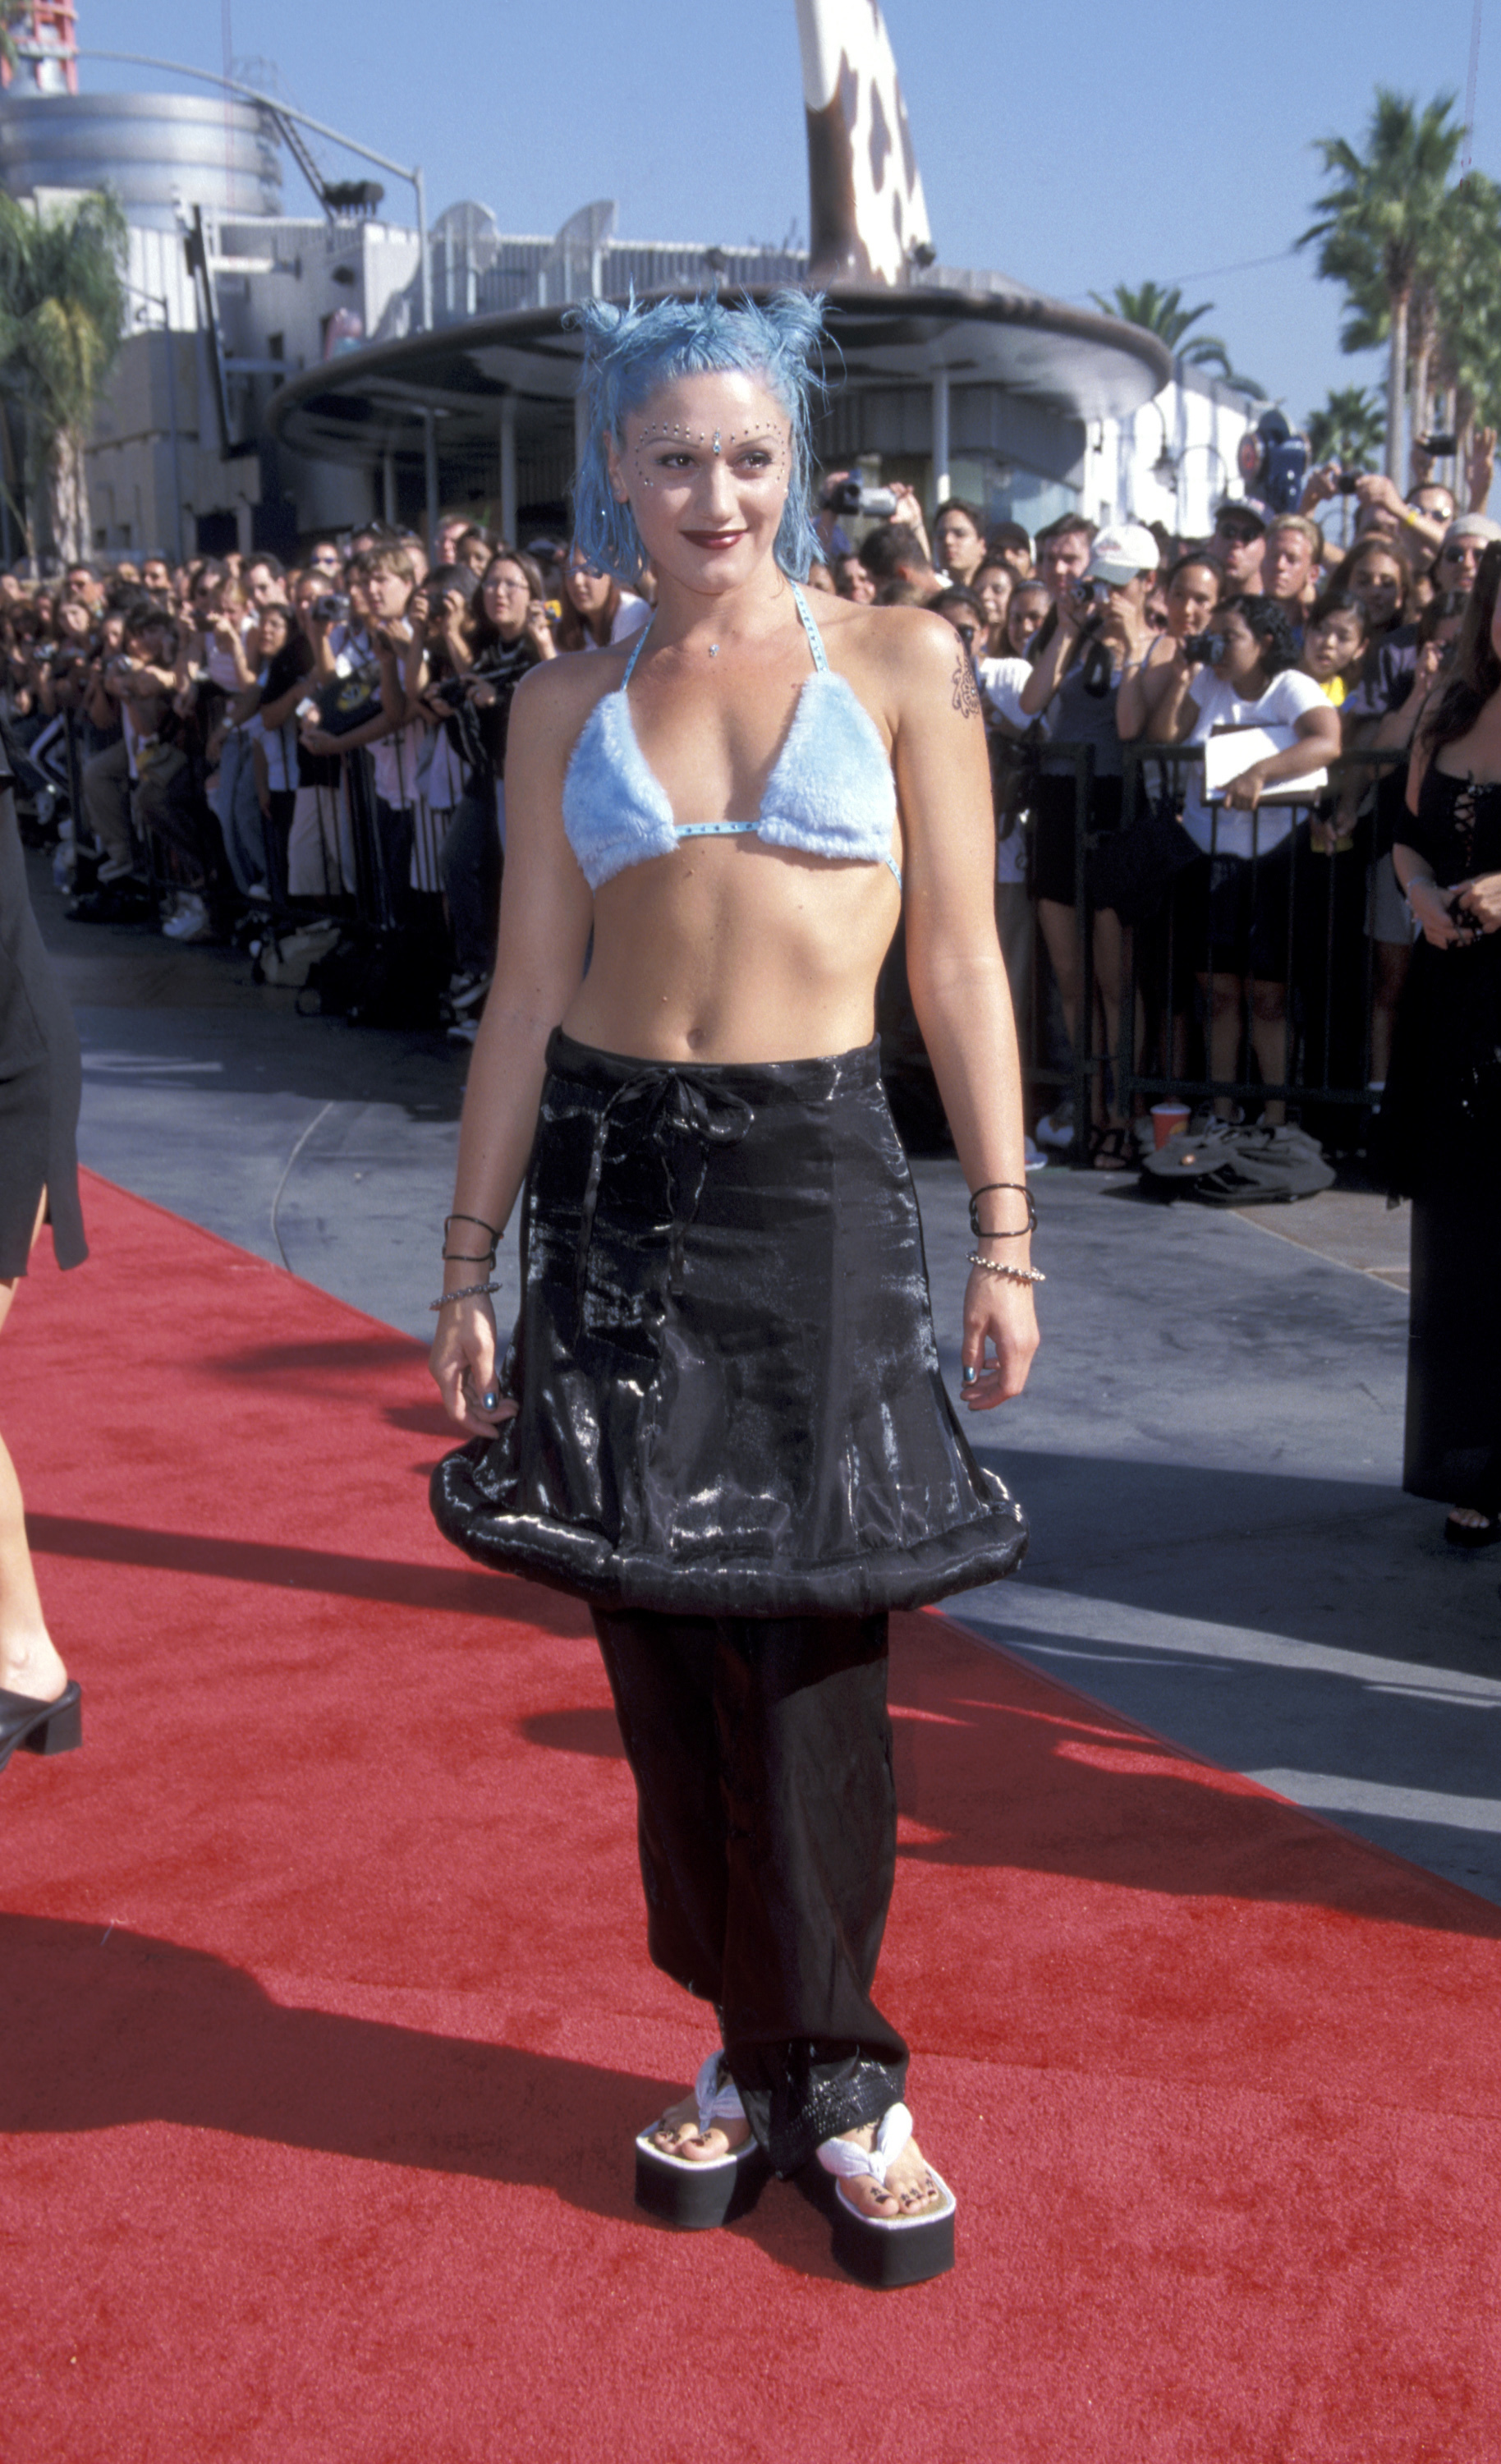 Gwen Stefani on the red carpet at the 1998 MTV VMAs in Los Angeles on Sept. 10, 1998.